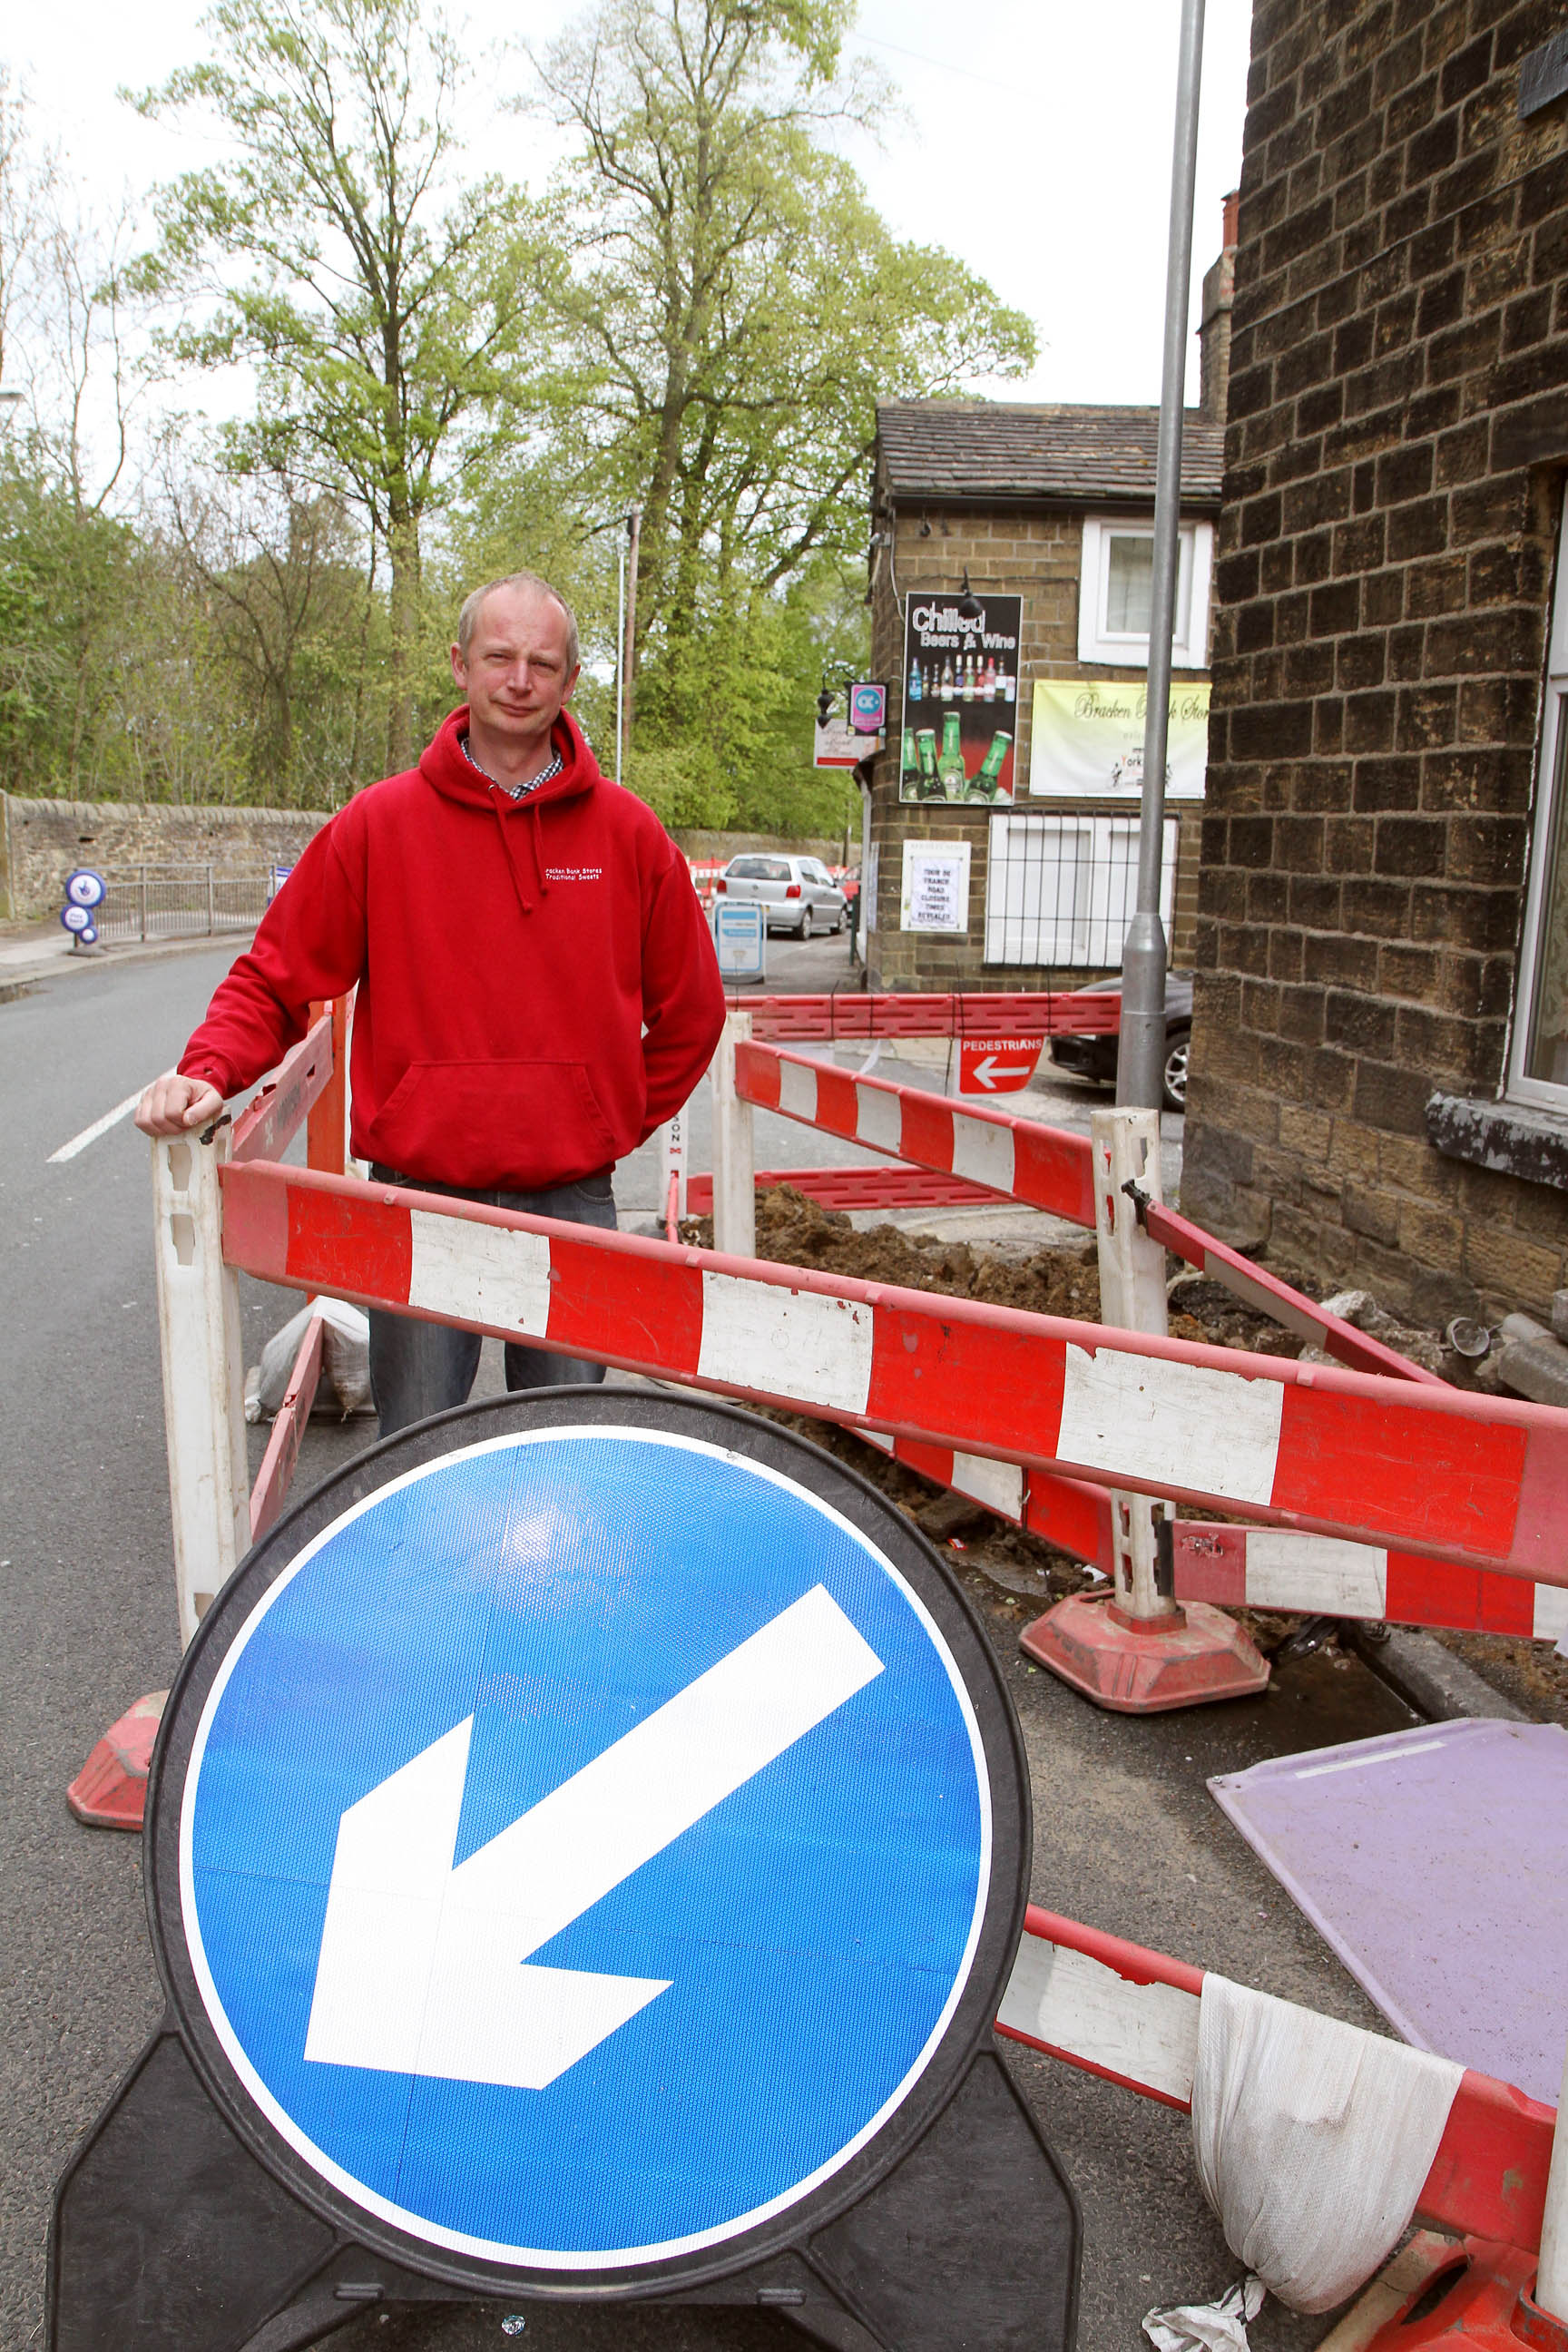 Bracken Bank Stores owner David Mortimer by the roadworks outside his shop and (right) the illuminated figure of a yob caught in the act on CCTV cameras hurling part of the barriers at his building